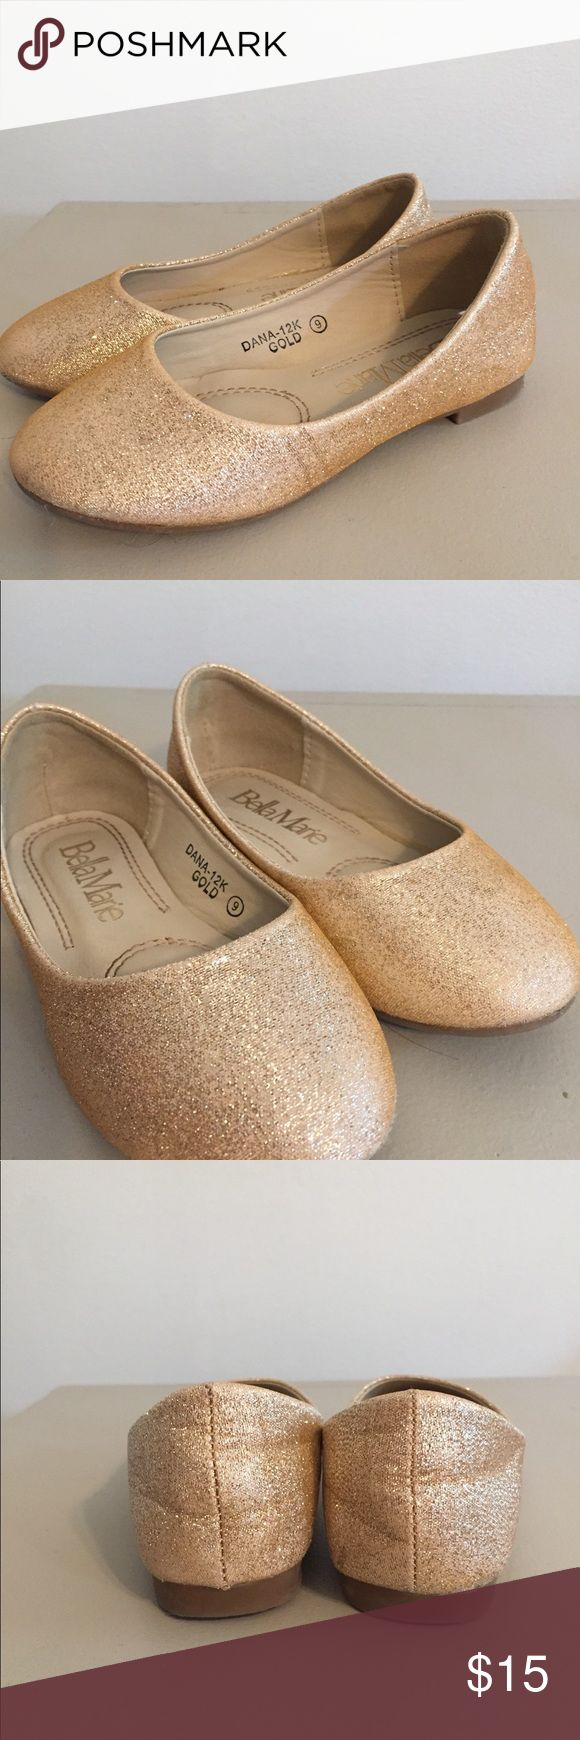 Girls glitter shoes Worn 1 time as a flower girl Shoes Dress Shoes